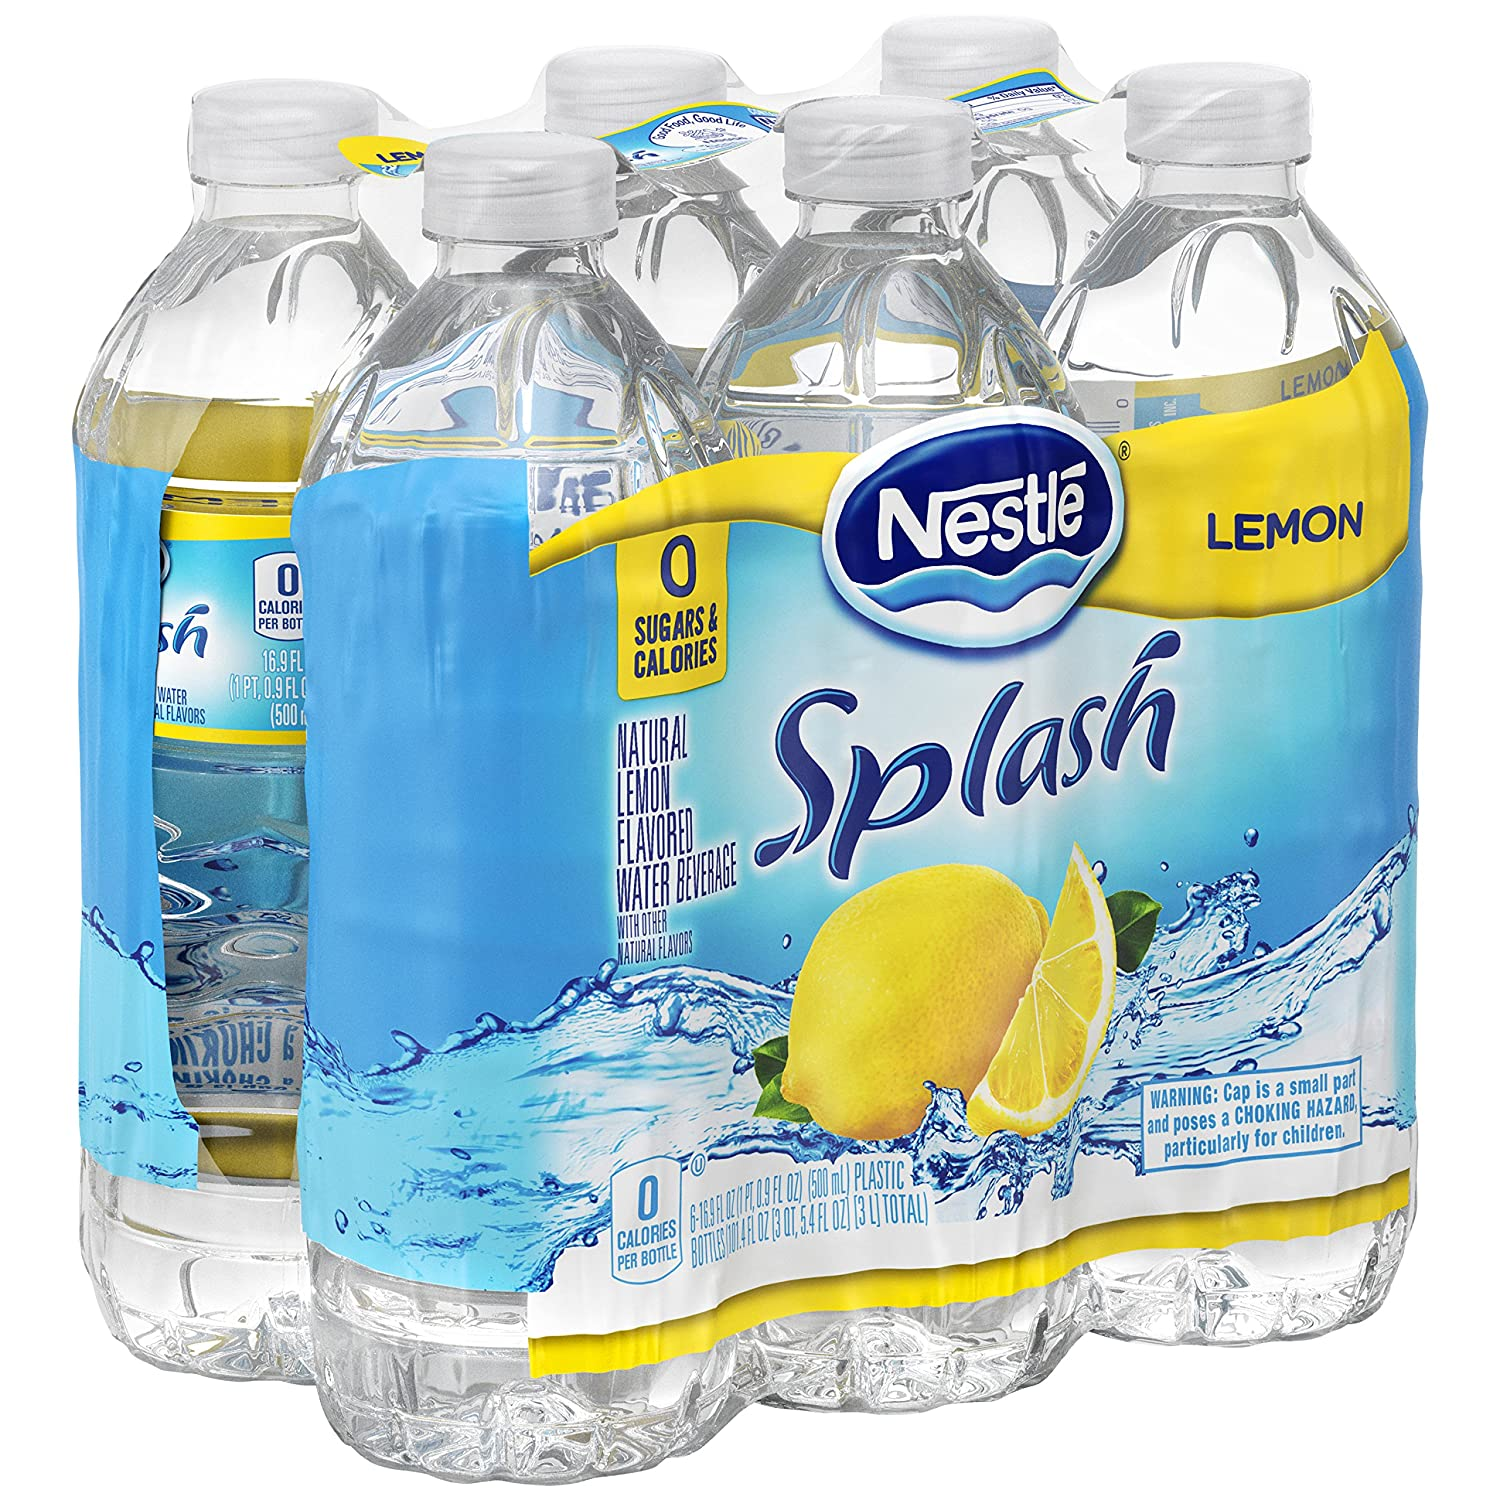 Nestle Pure Life Splash, Lemon, 16 9 Fluid Ounce (Pack of 6)